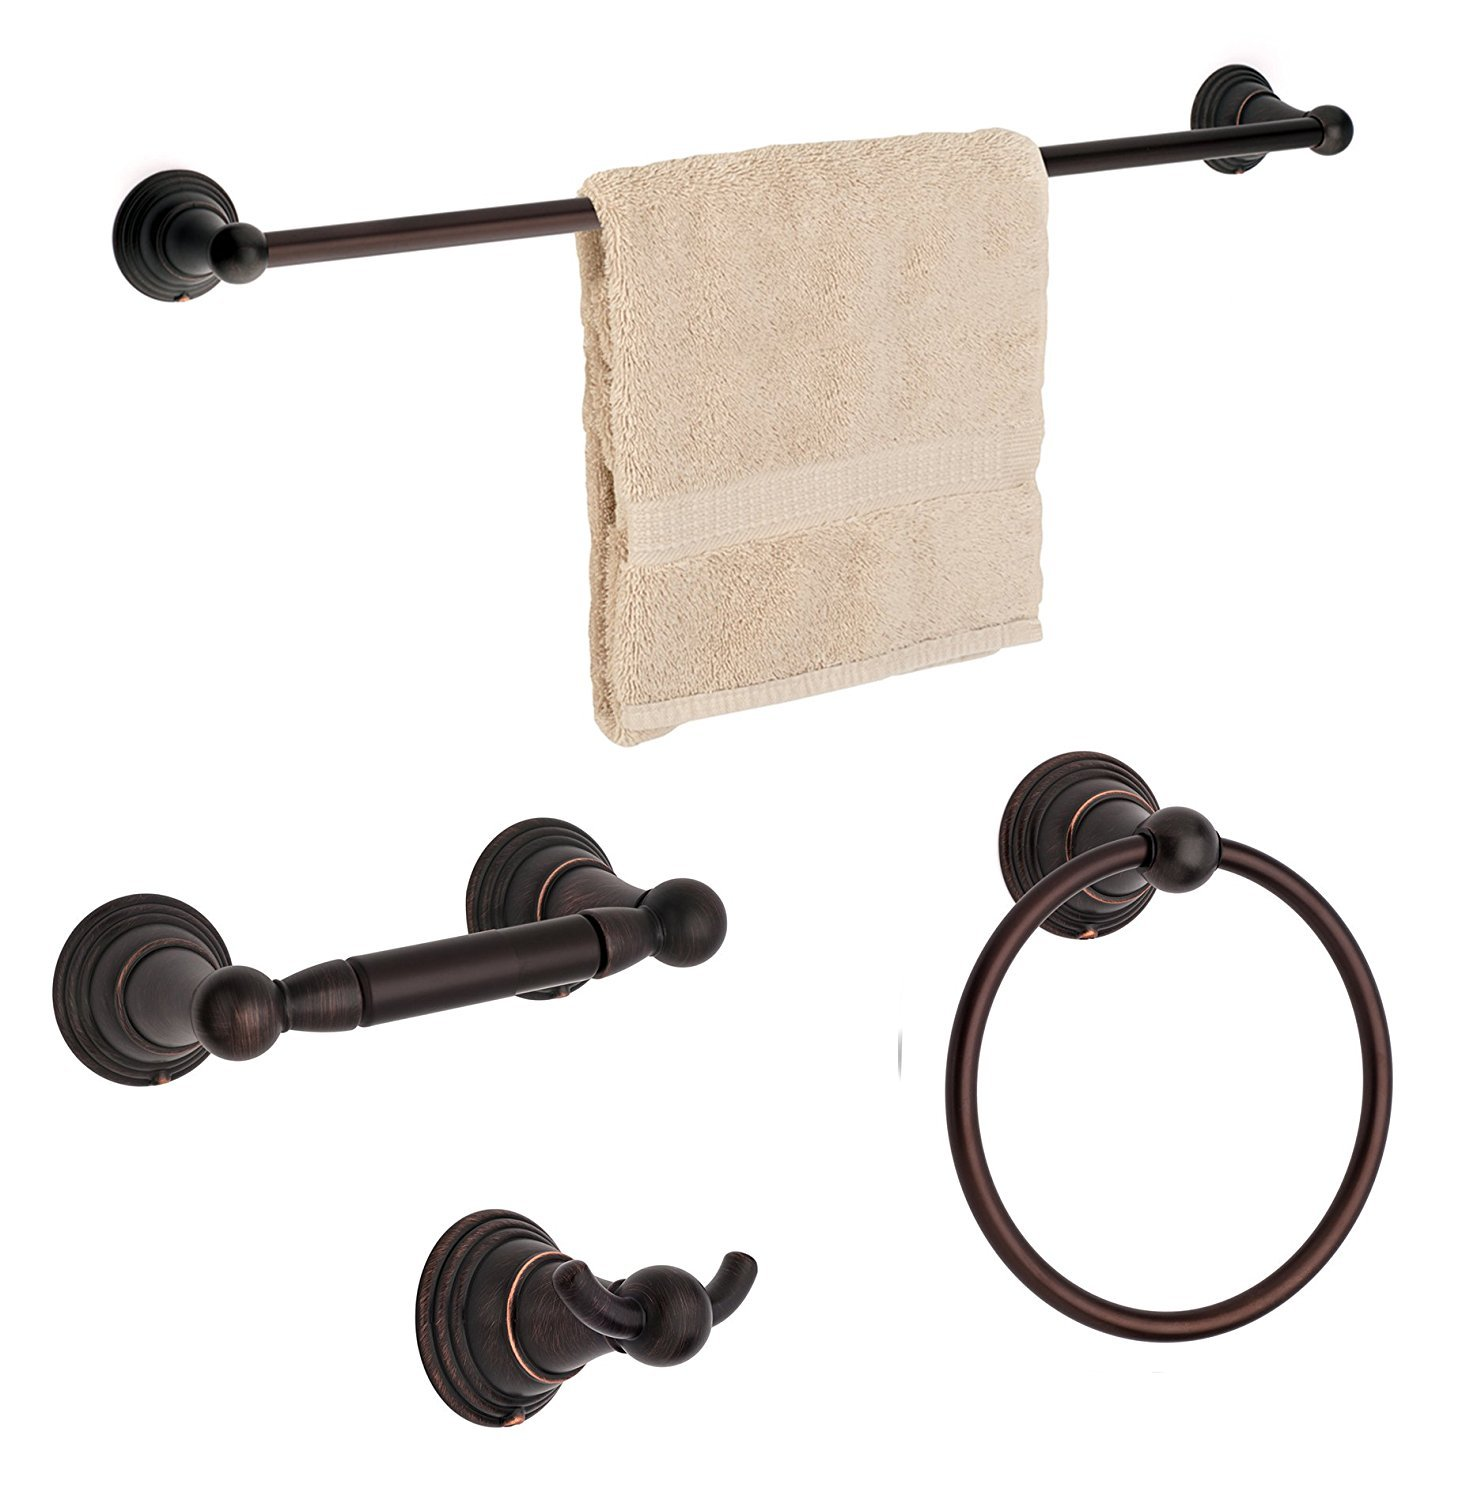 DYN-2211-ORB Dynasty Hardware Muirfield Towel Bar Collection Oil Rubbed Bronze Towel Ring